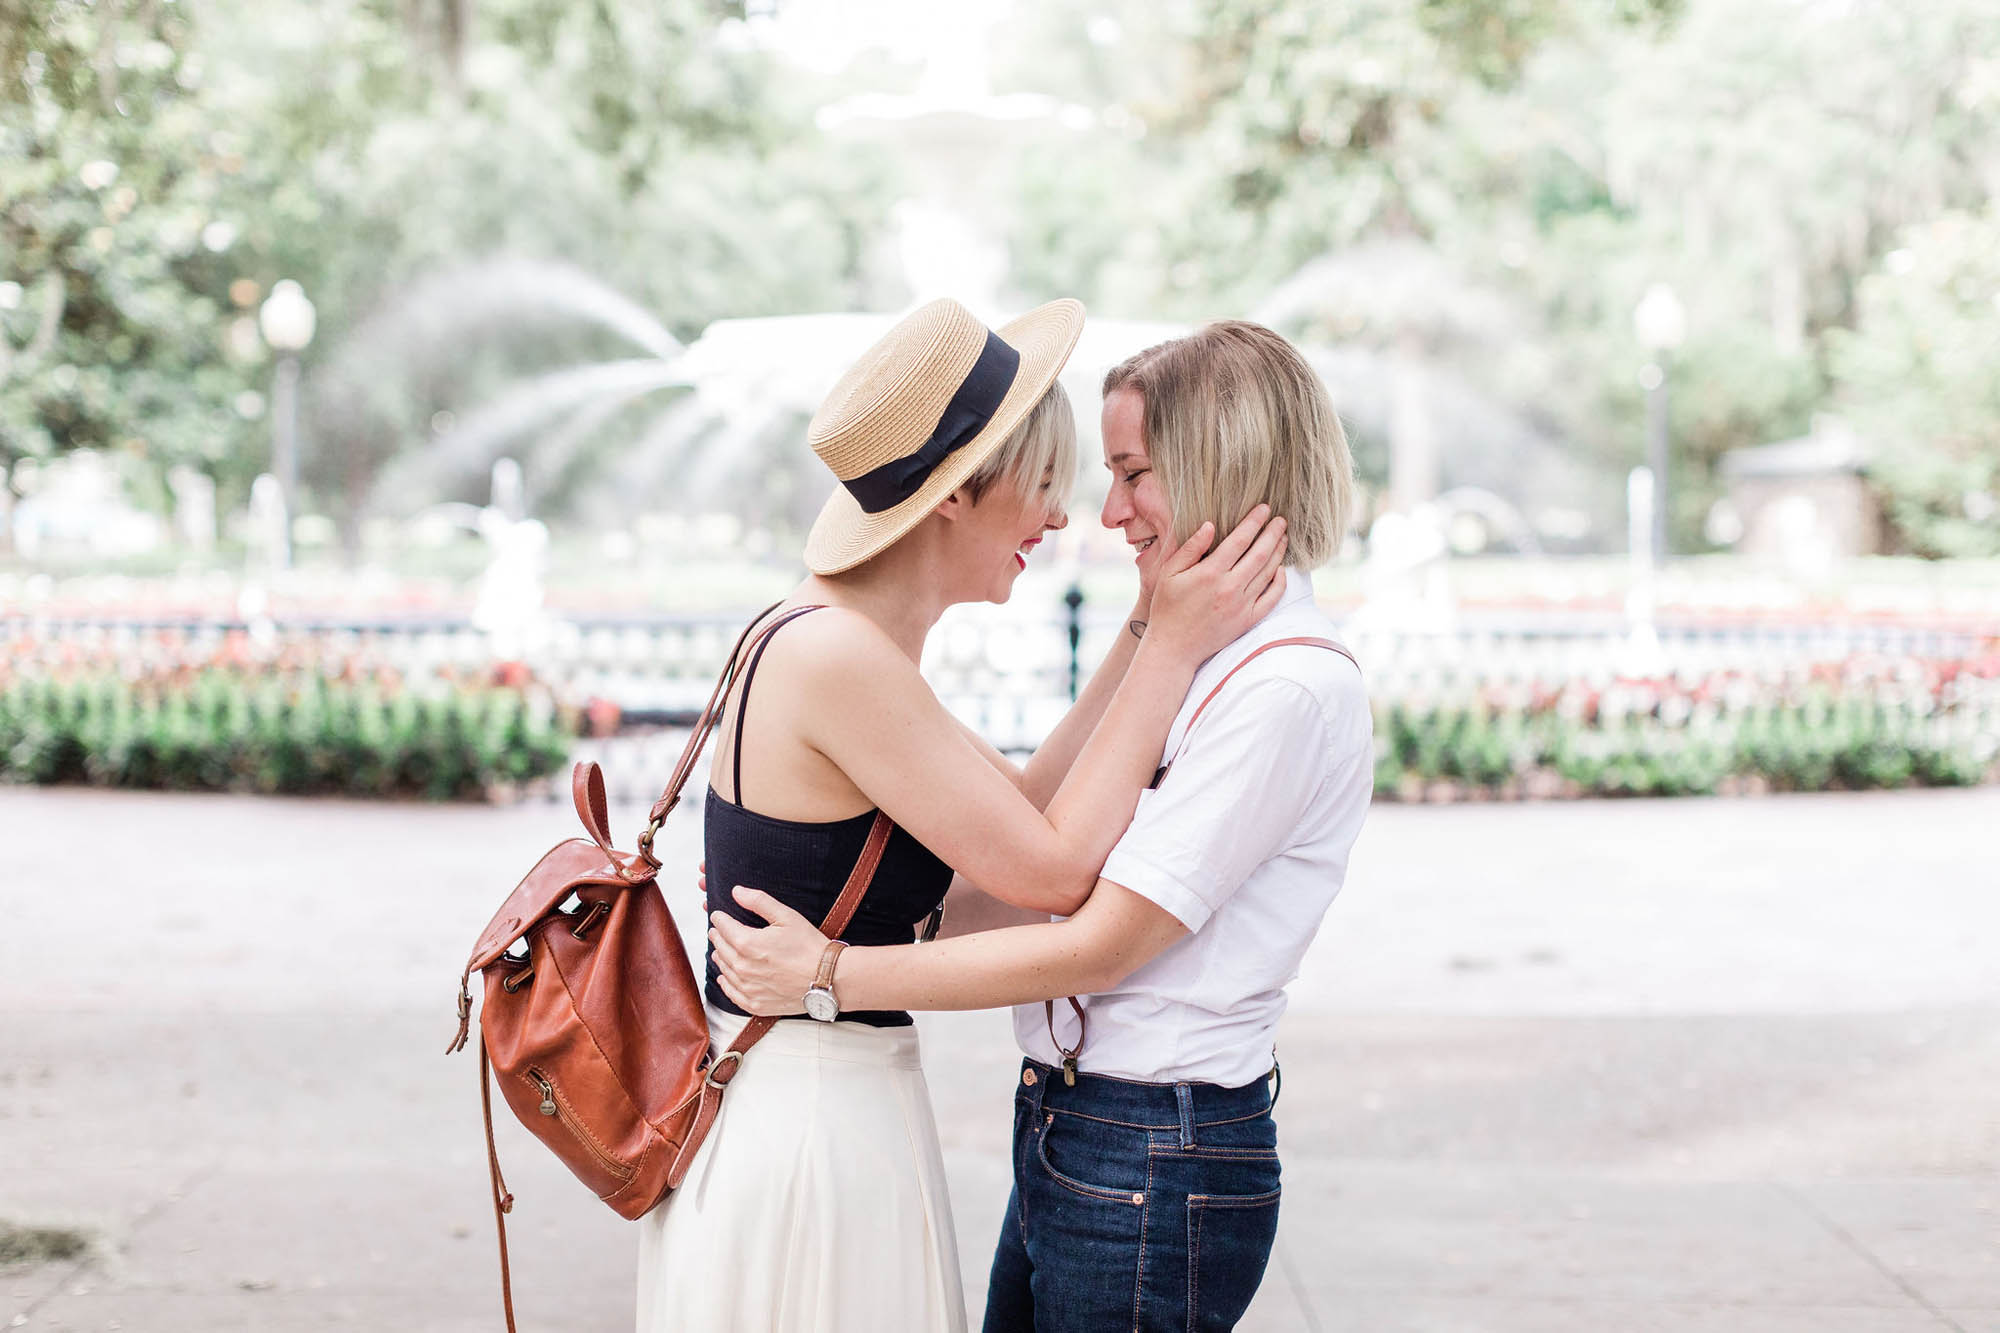 Surprise Proposal in a Park - Lesbian Engagement - Dancing With Her